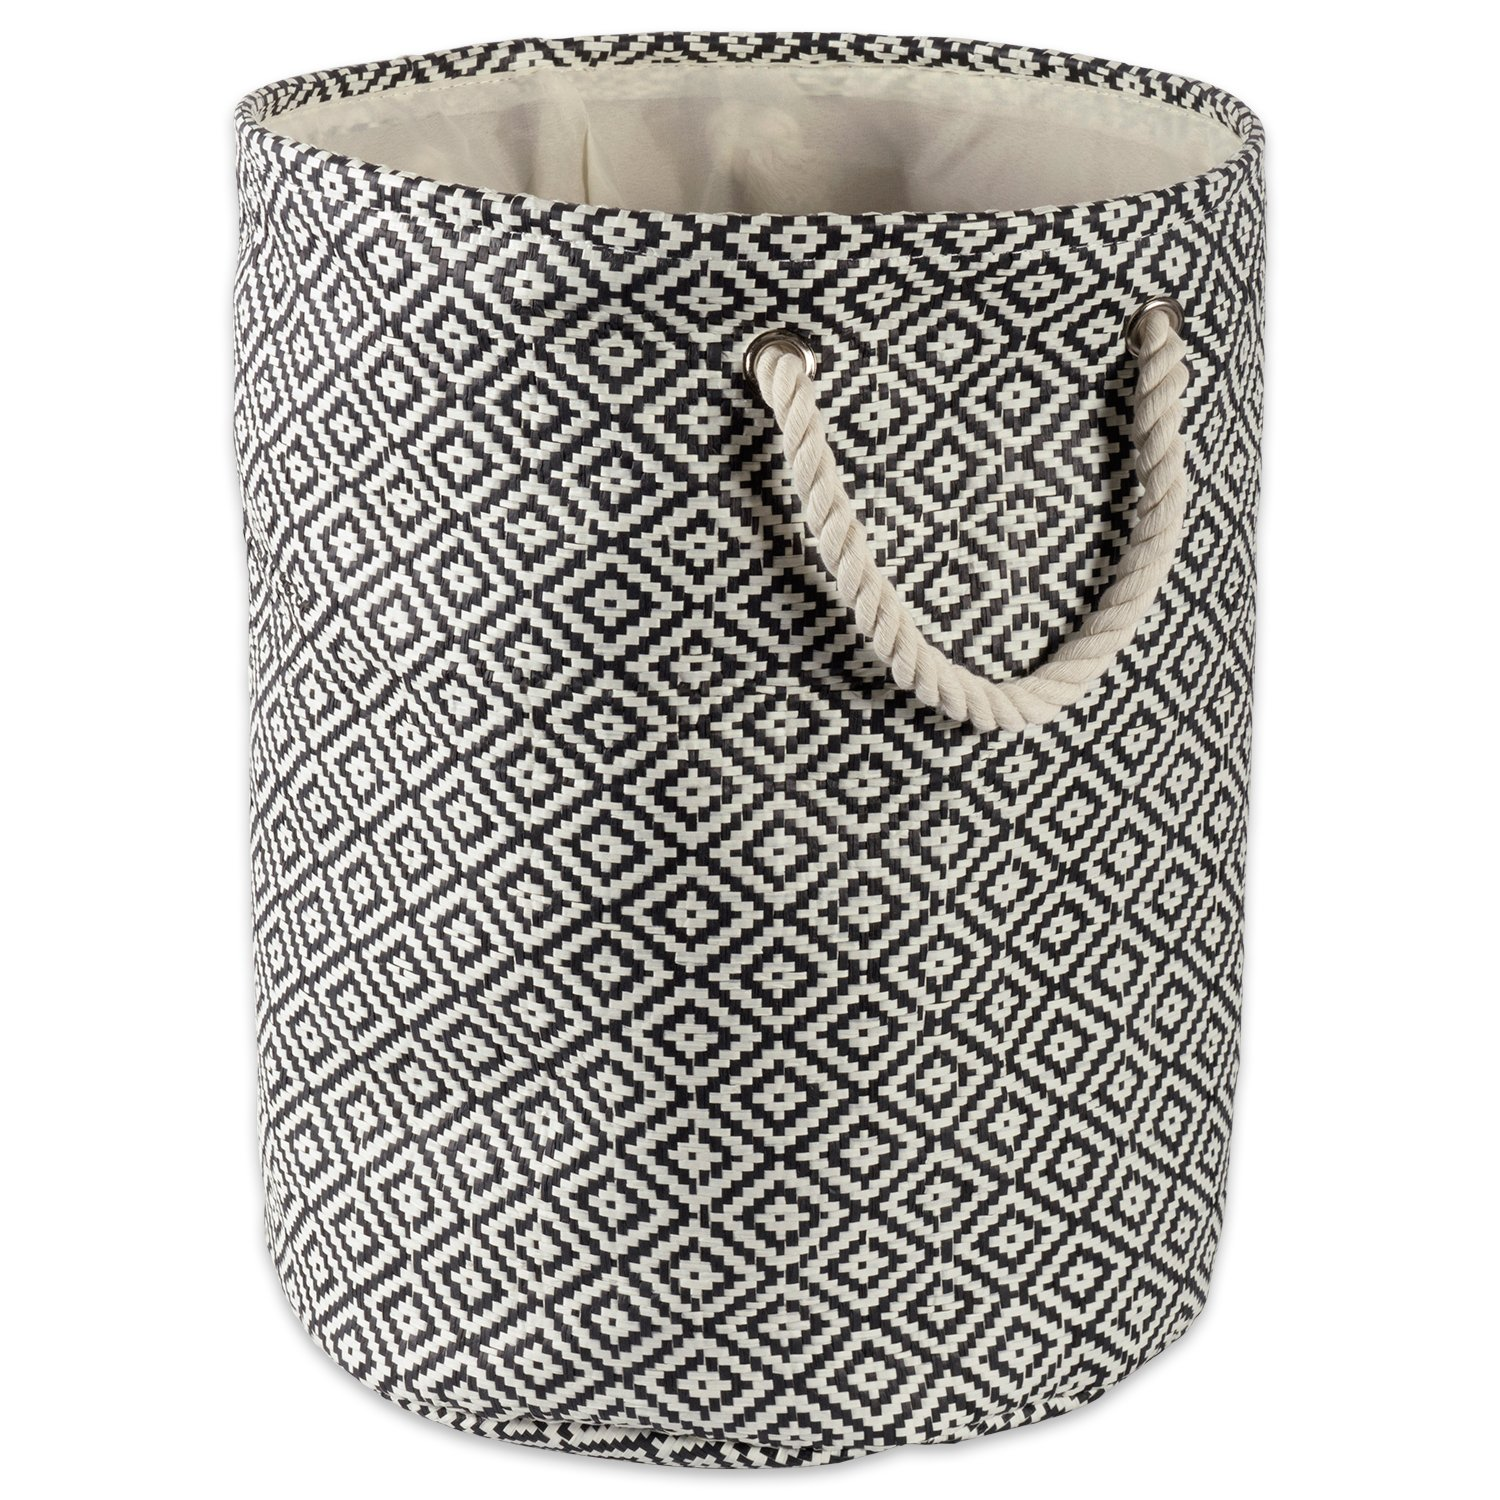 DII Woven Paper Basket or Bin, Collapsible & Convenient Home Organization Solution for Bedroom, Bathroom, Dorm or Laundry (Large Round - 15x20) - Black Geo Diamond